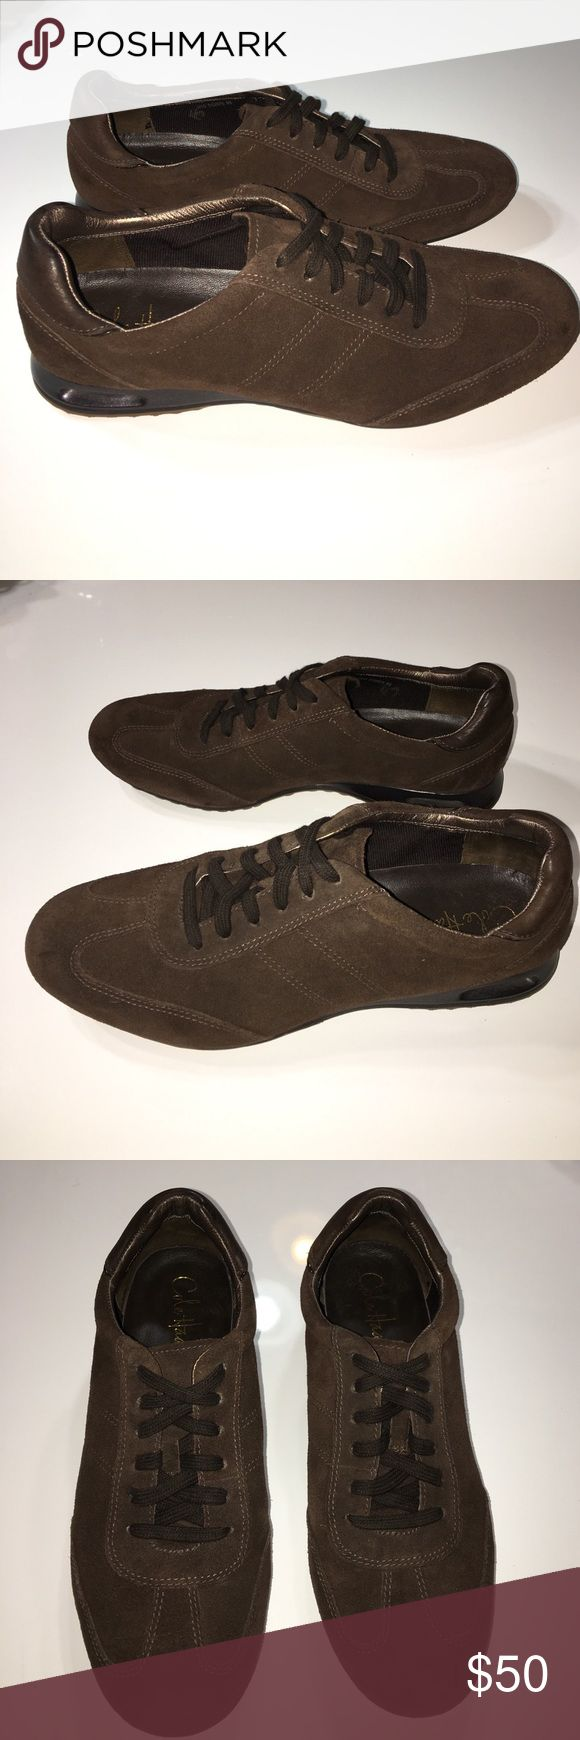 Cole Haan Nike Air leather fashion sneakers sz 8 Excellent condition authentic Cole Haan Nike Air brown suede leather fashion sneakers tennis shoes sz 8 Cole Haan Shoes Sneakers